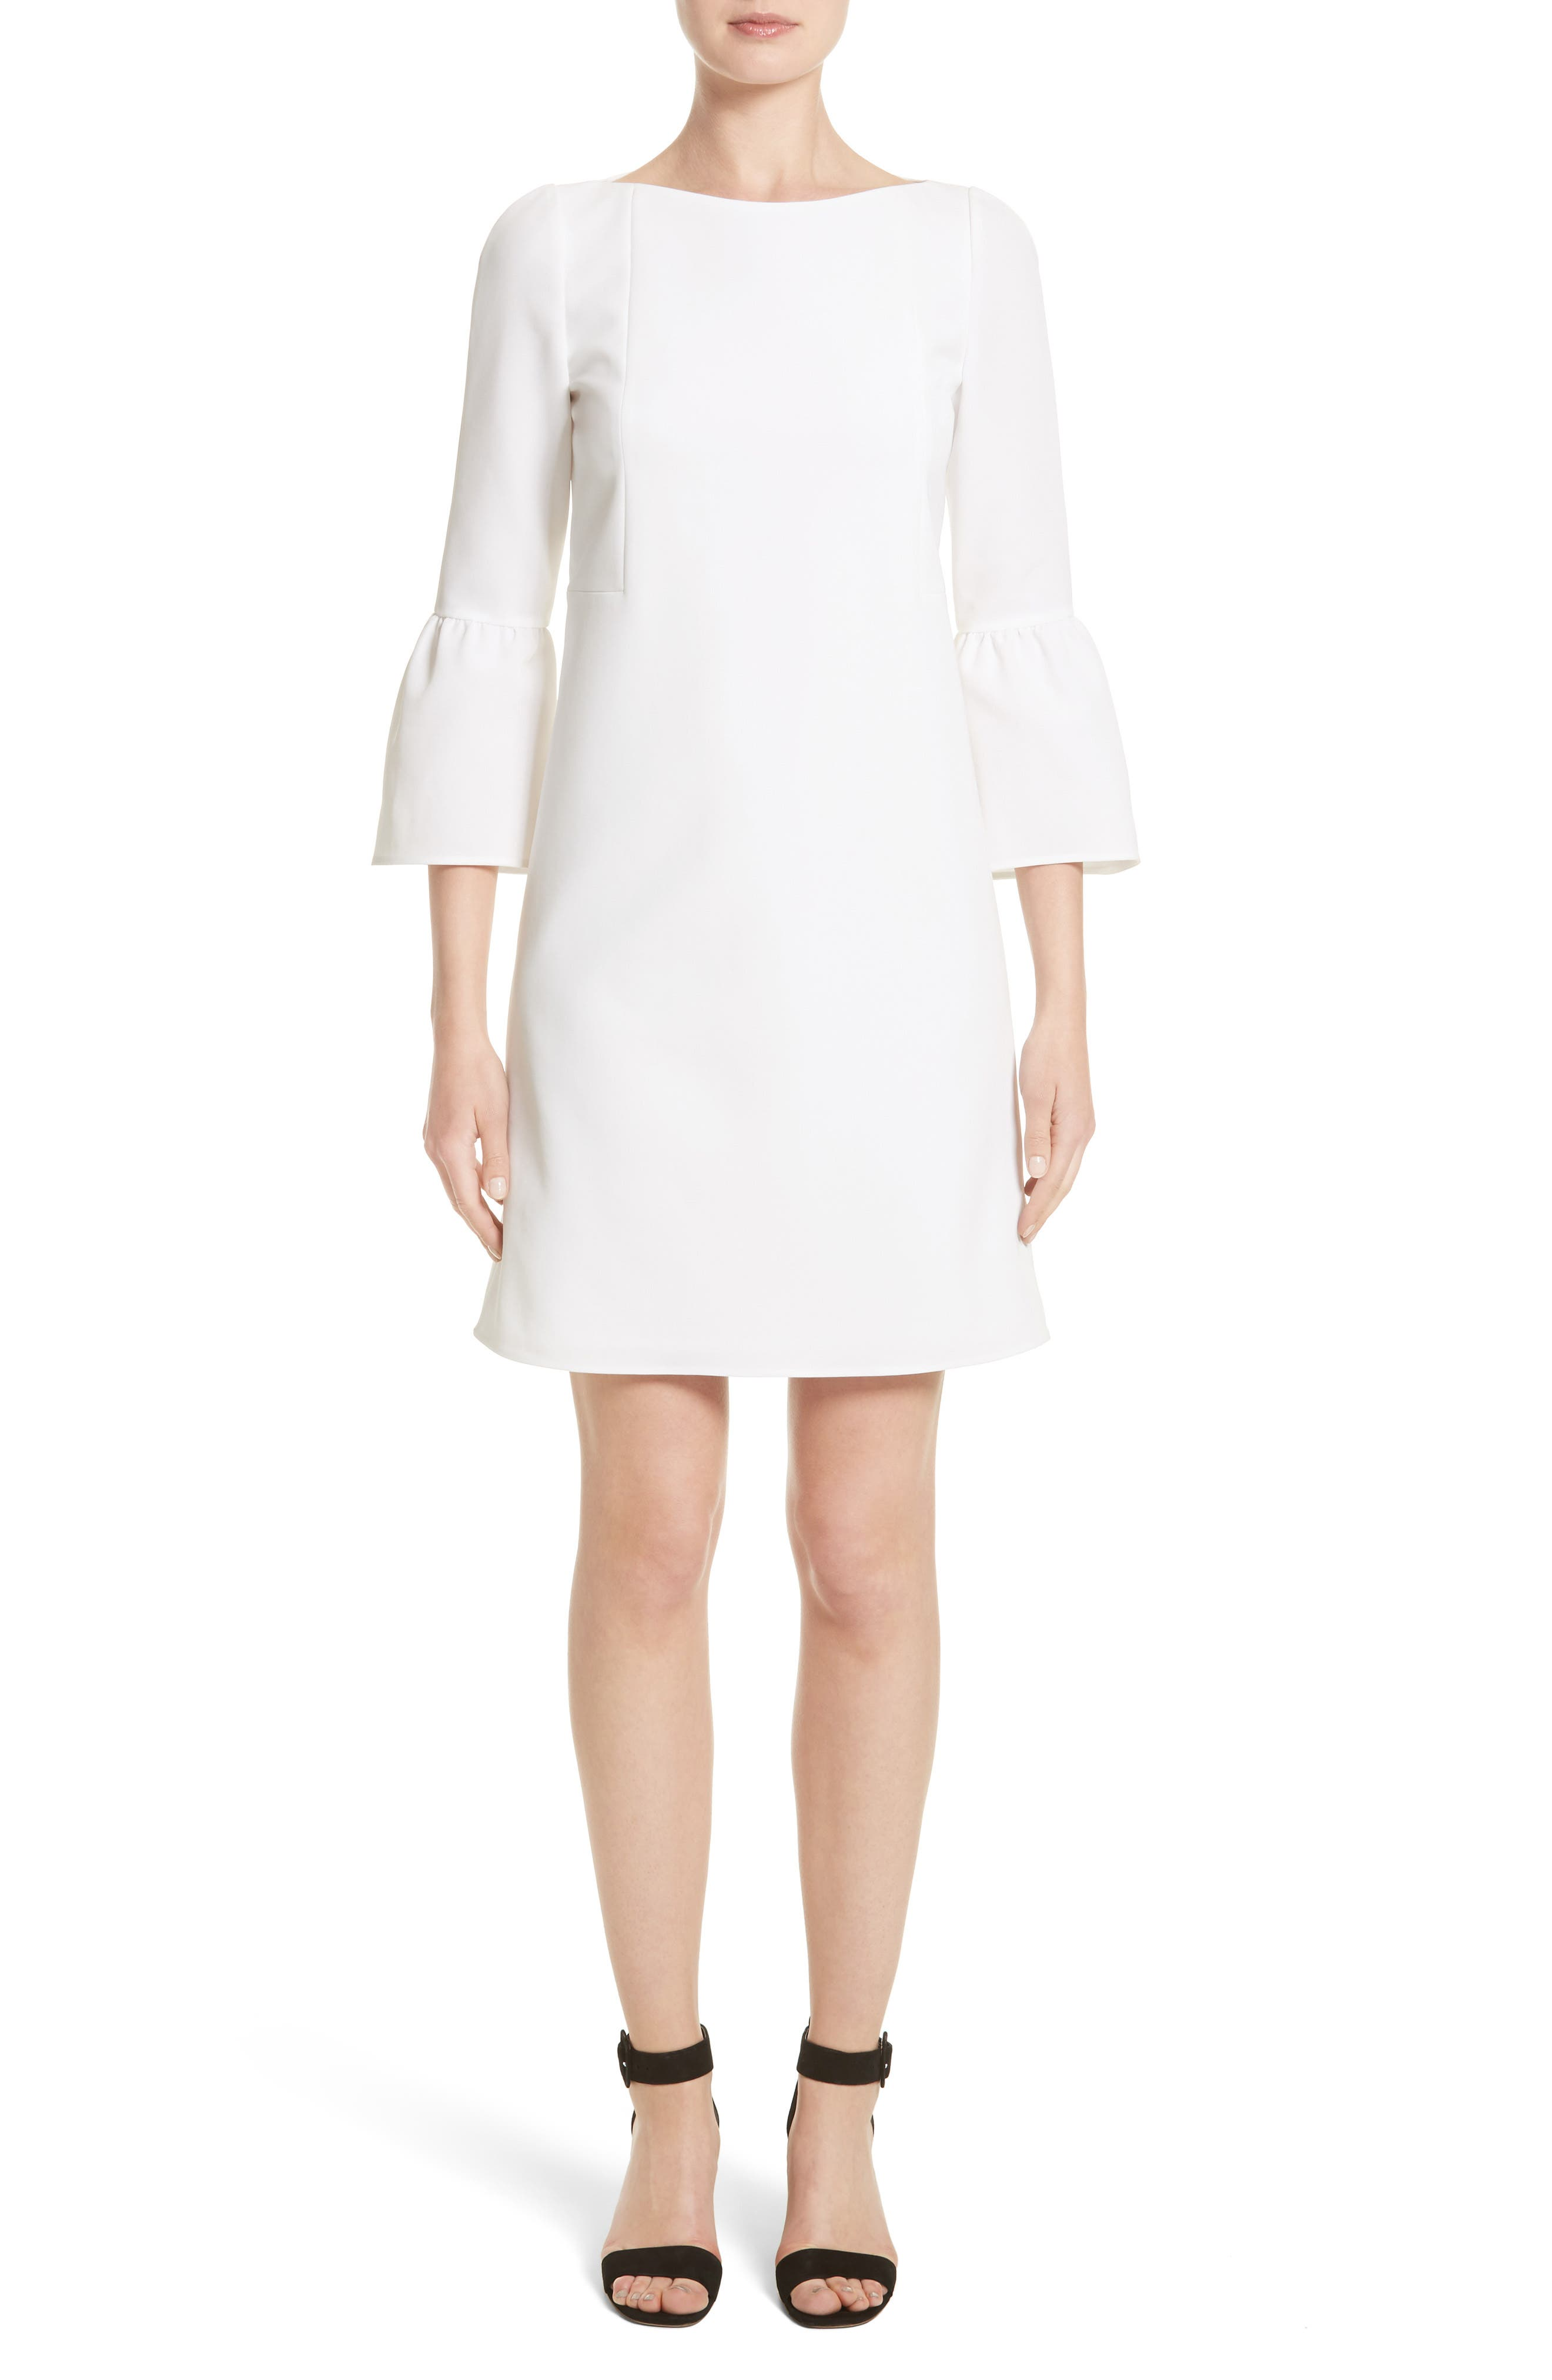 Alternate Image 1 Selected - Lafayette 148 New York Marisa Flounce Cuff Shift Dress (Nordstrom Exclusive)